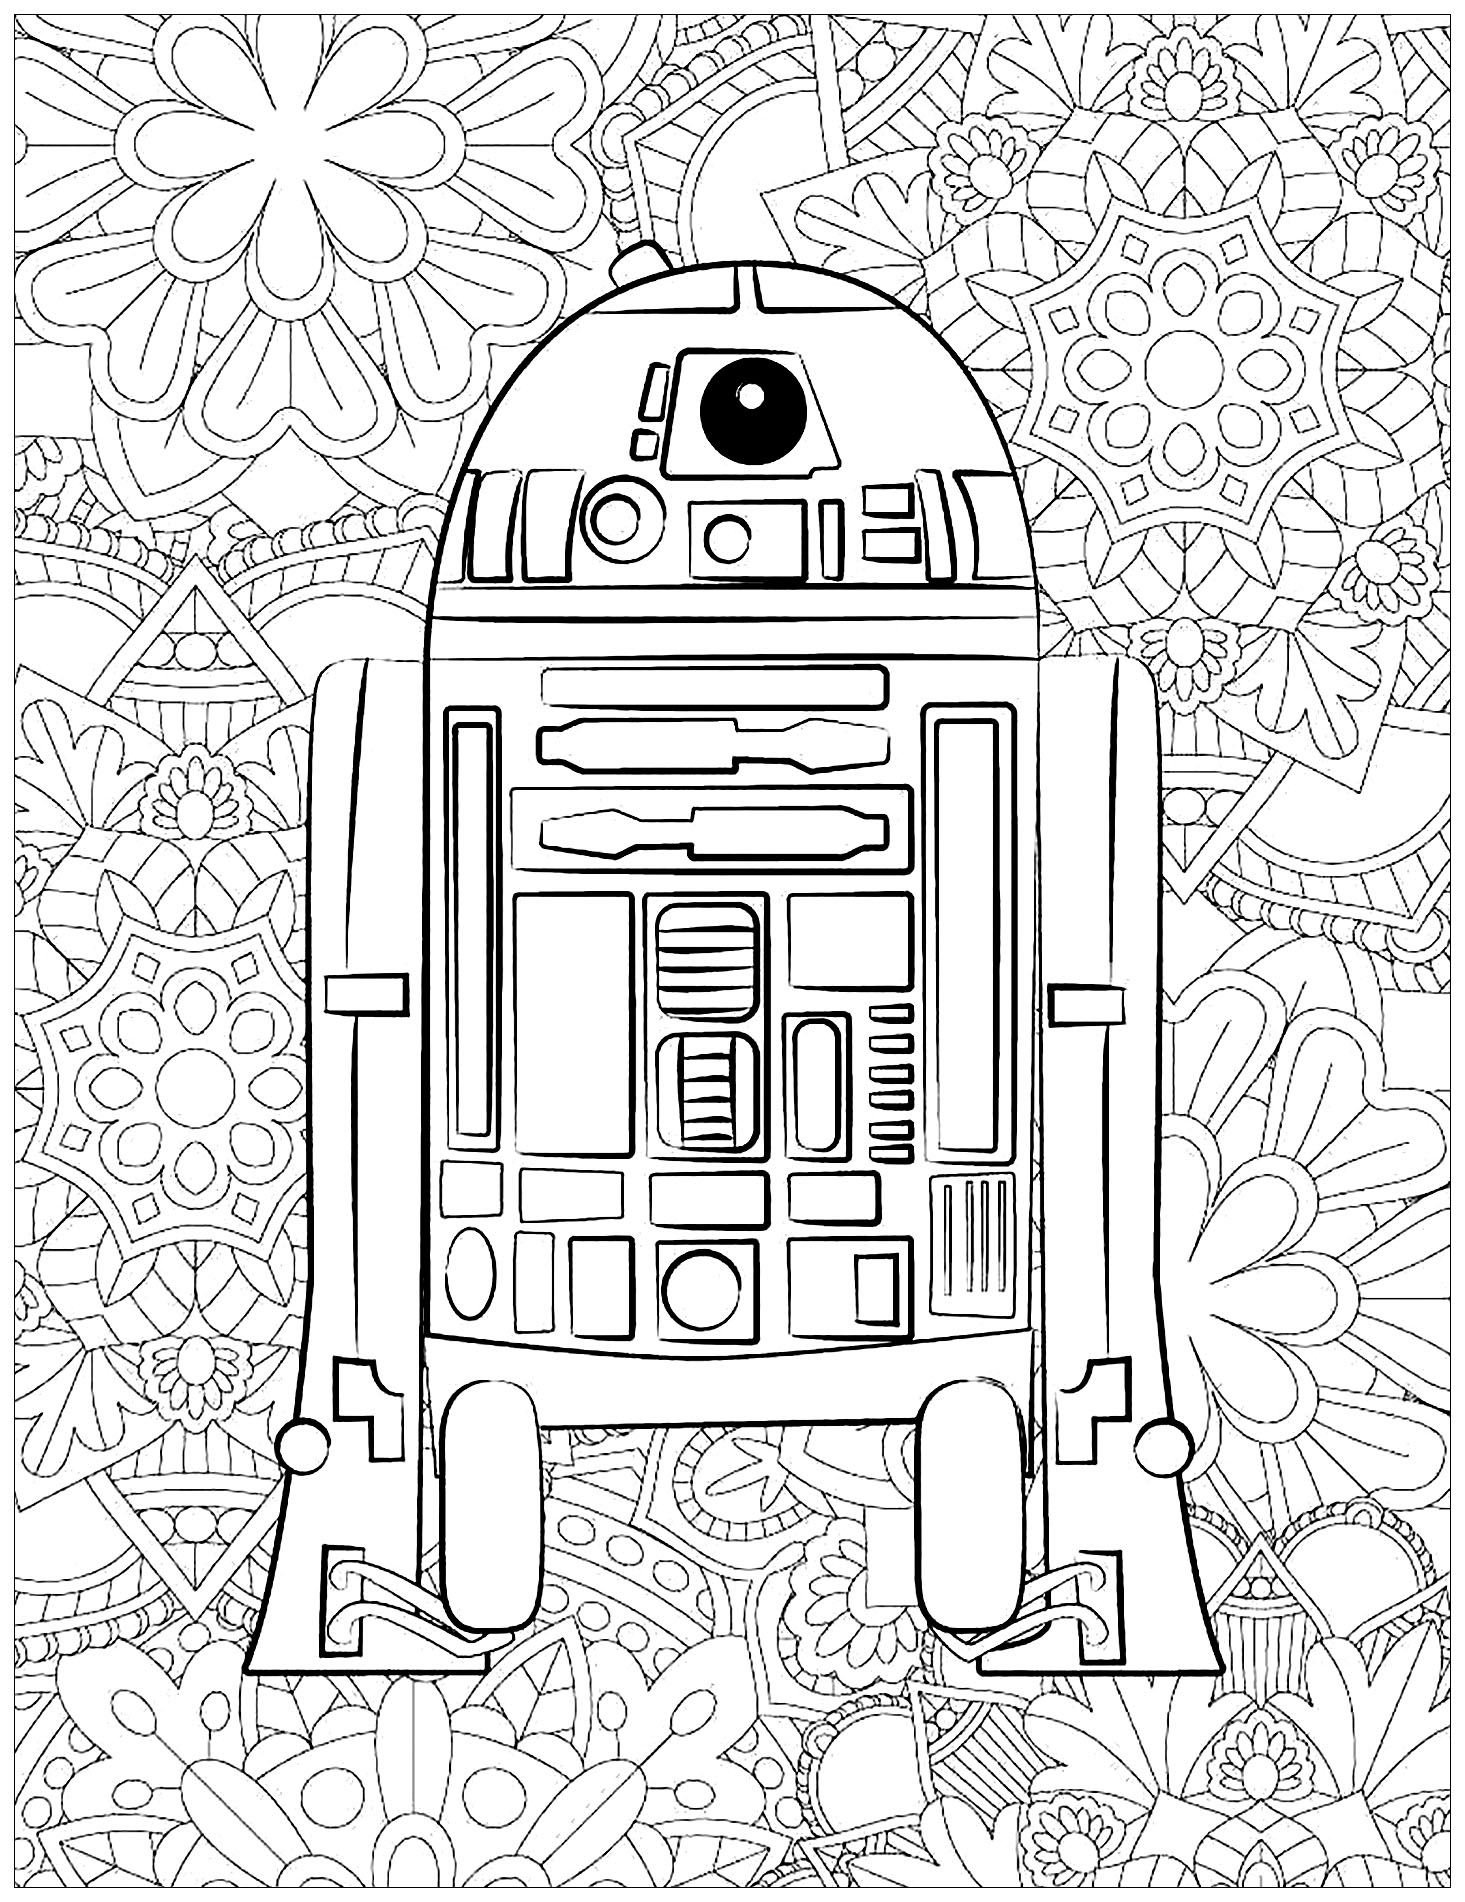 star wars coloring images star wars color by number math worksheets sketch coloring page coloring star wars images